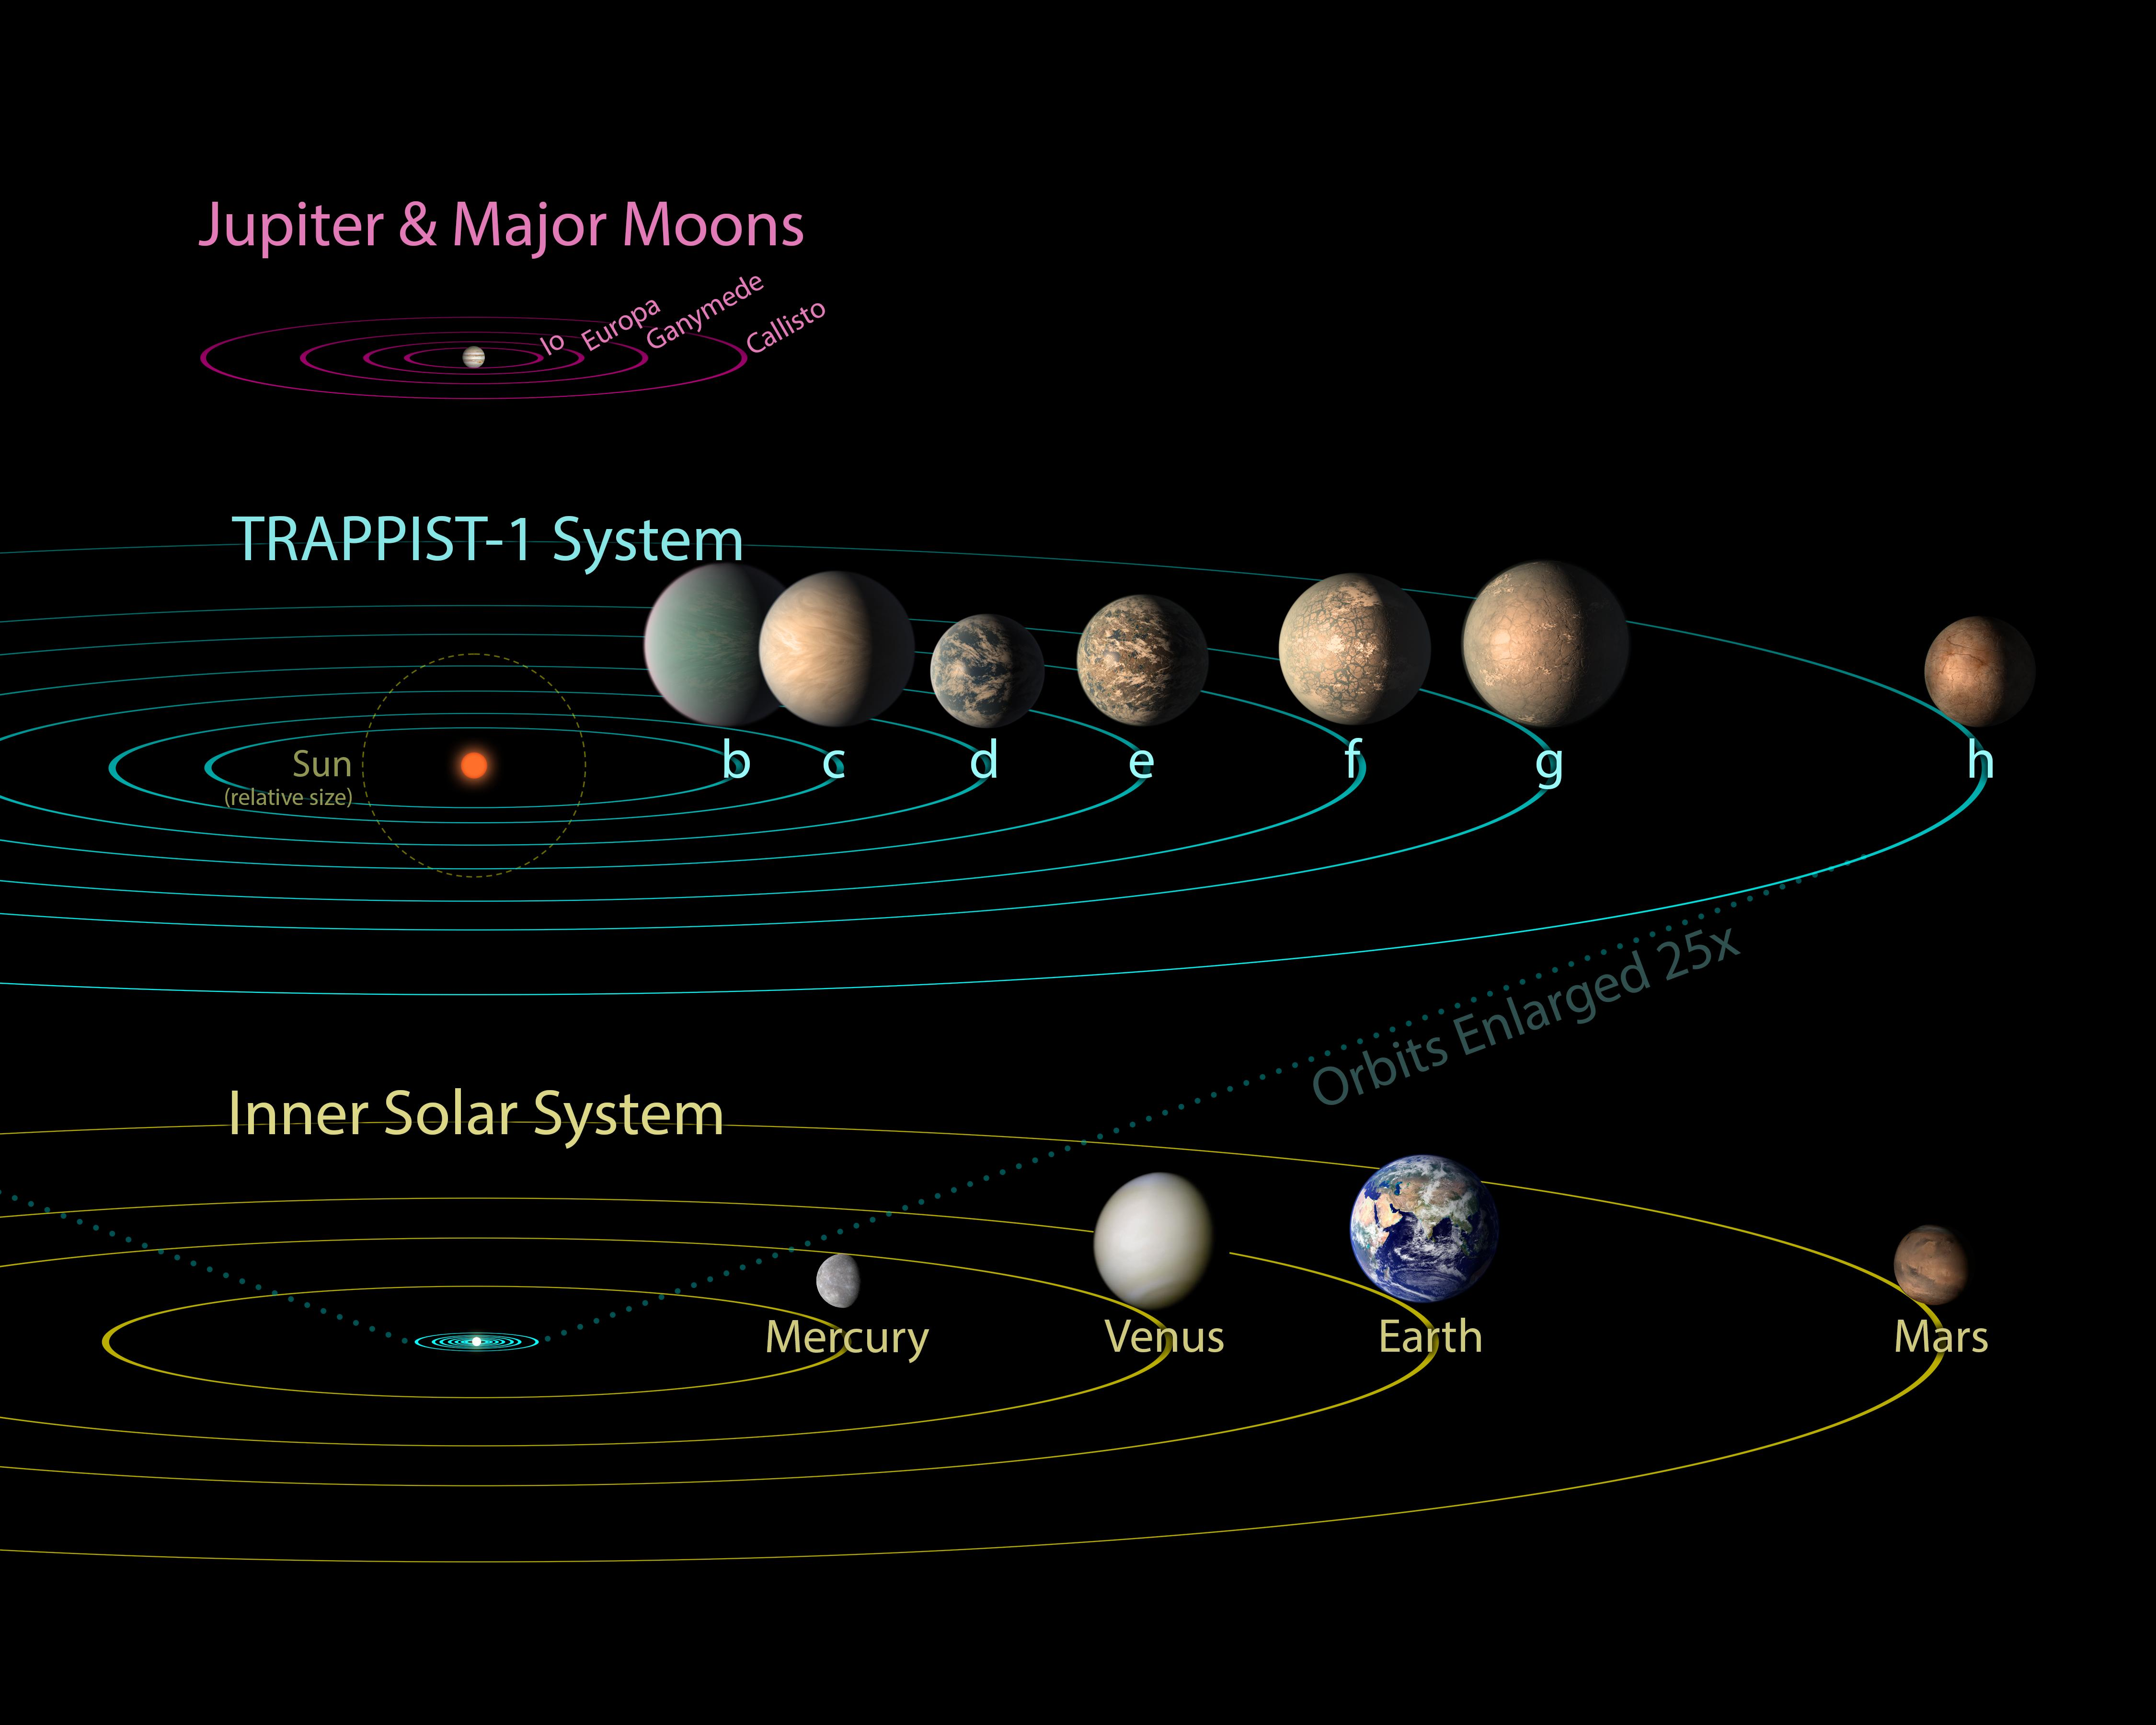 Space images trappist 1 compared to jovian moons and inner solar full res jpg sciox Choice Image